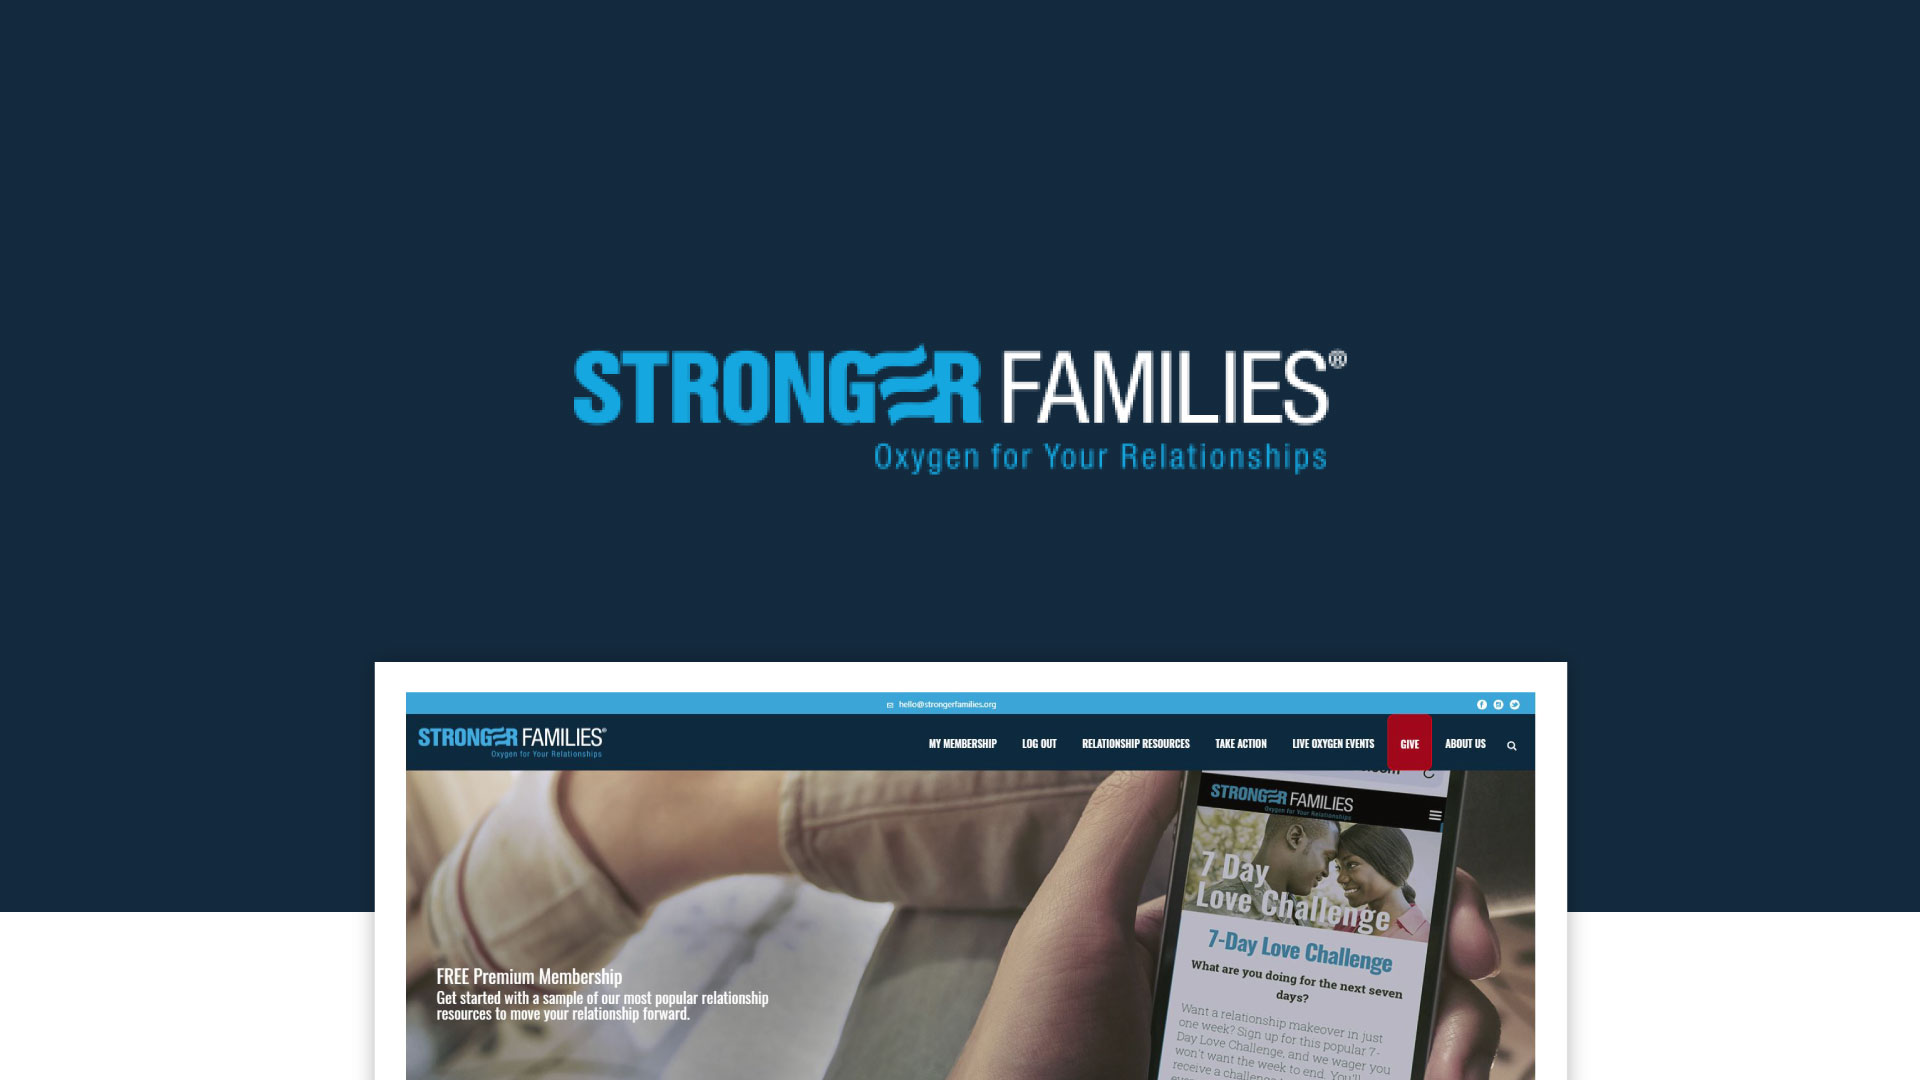 Stronger-families-1